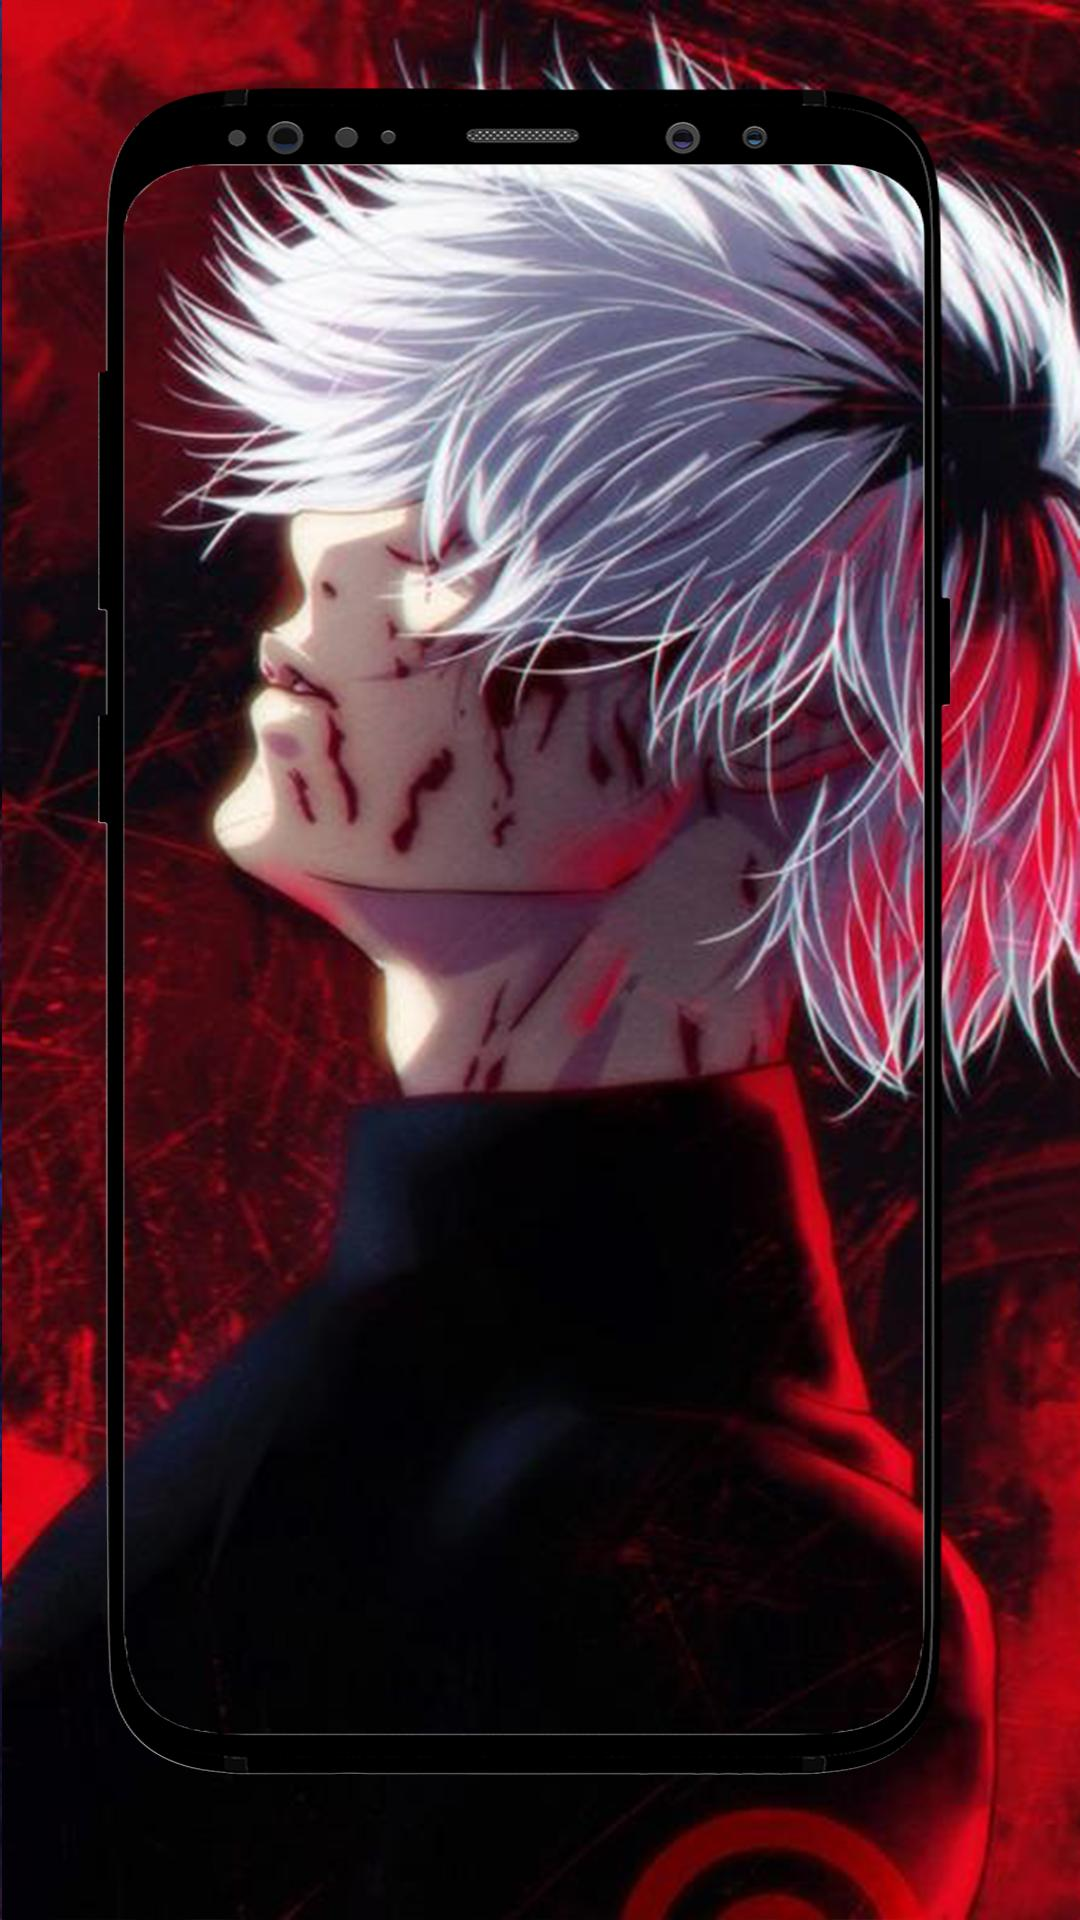 Anime Ghoul Wallpapers Hd 4k For Android Apk Download